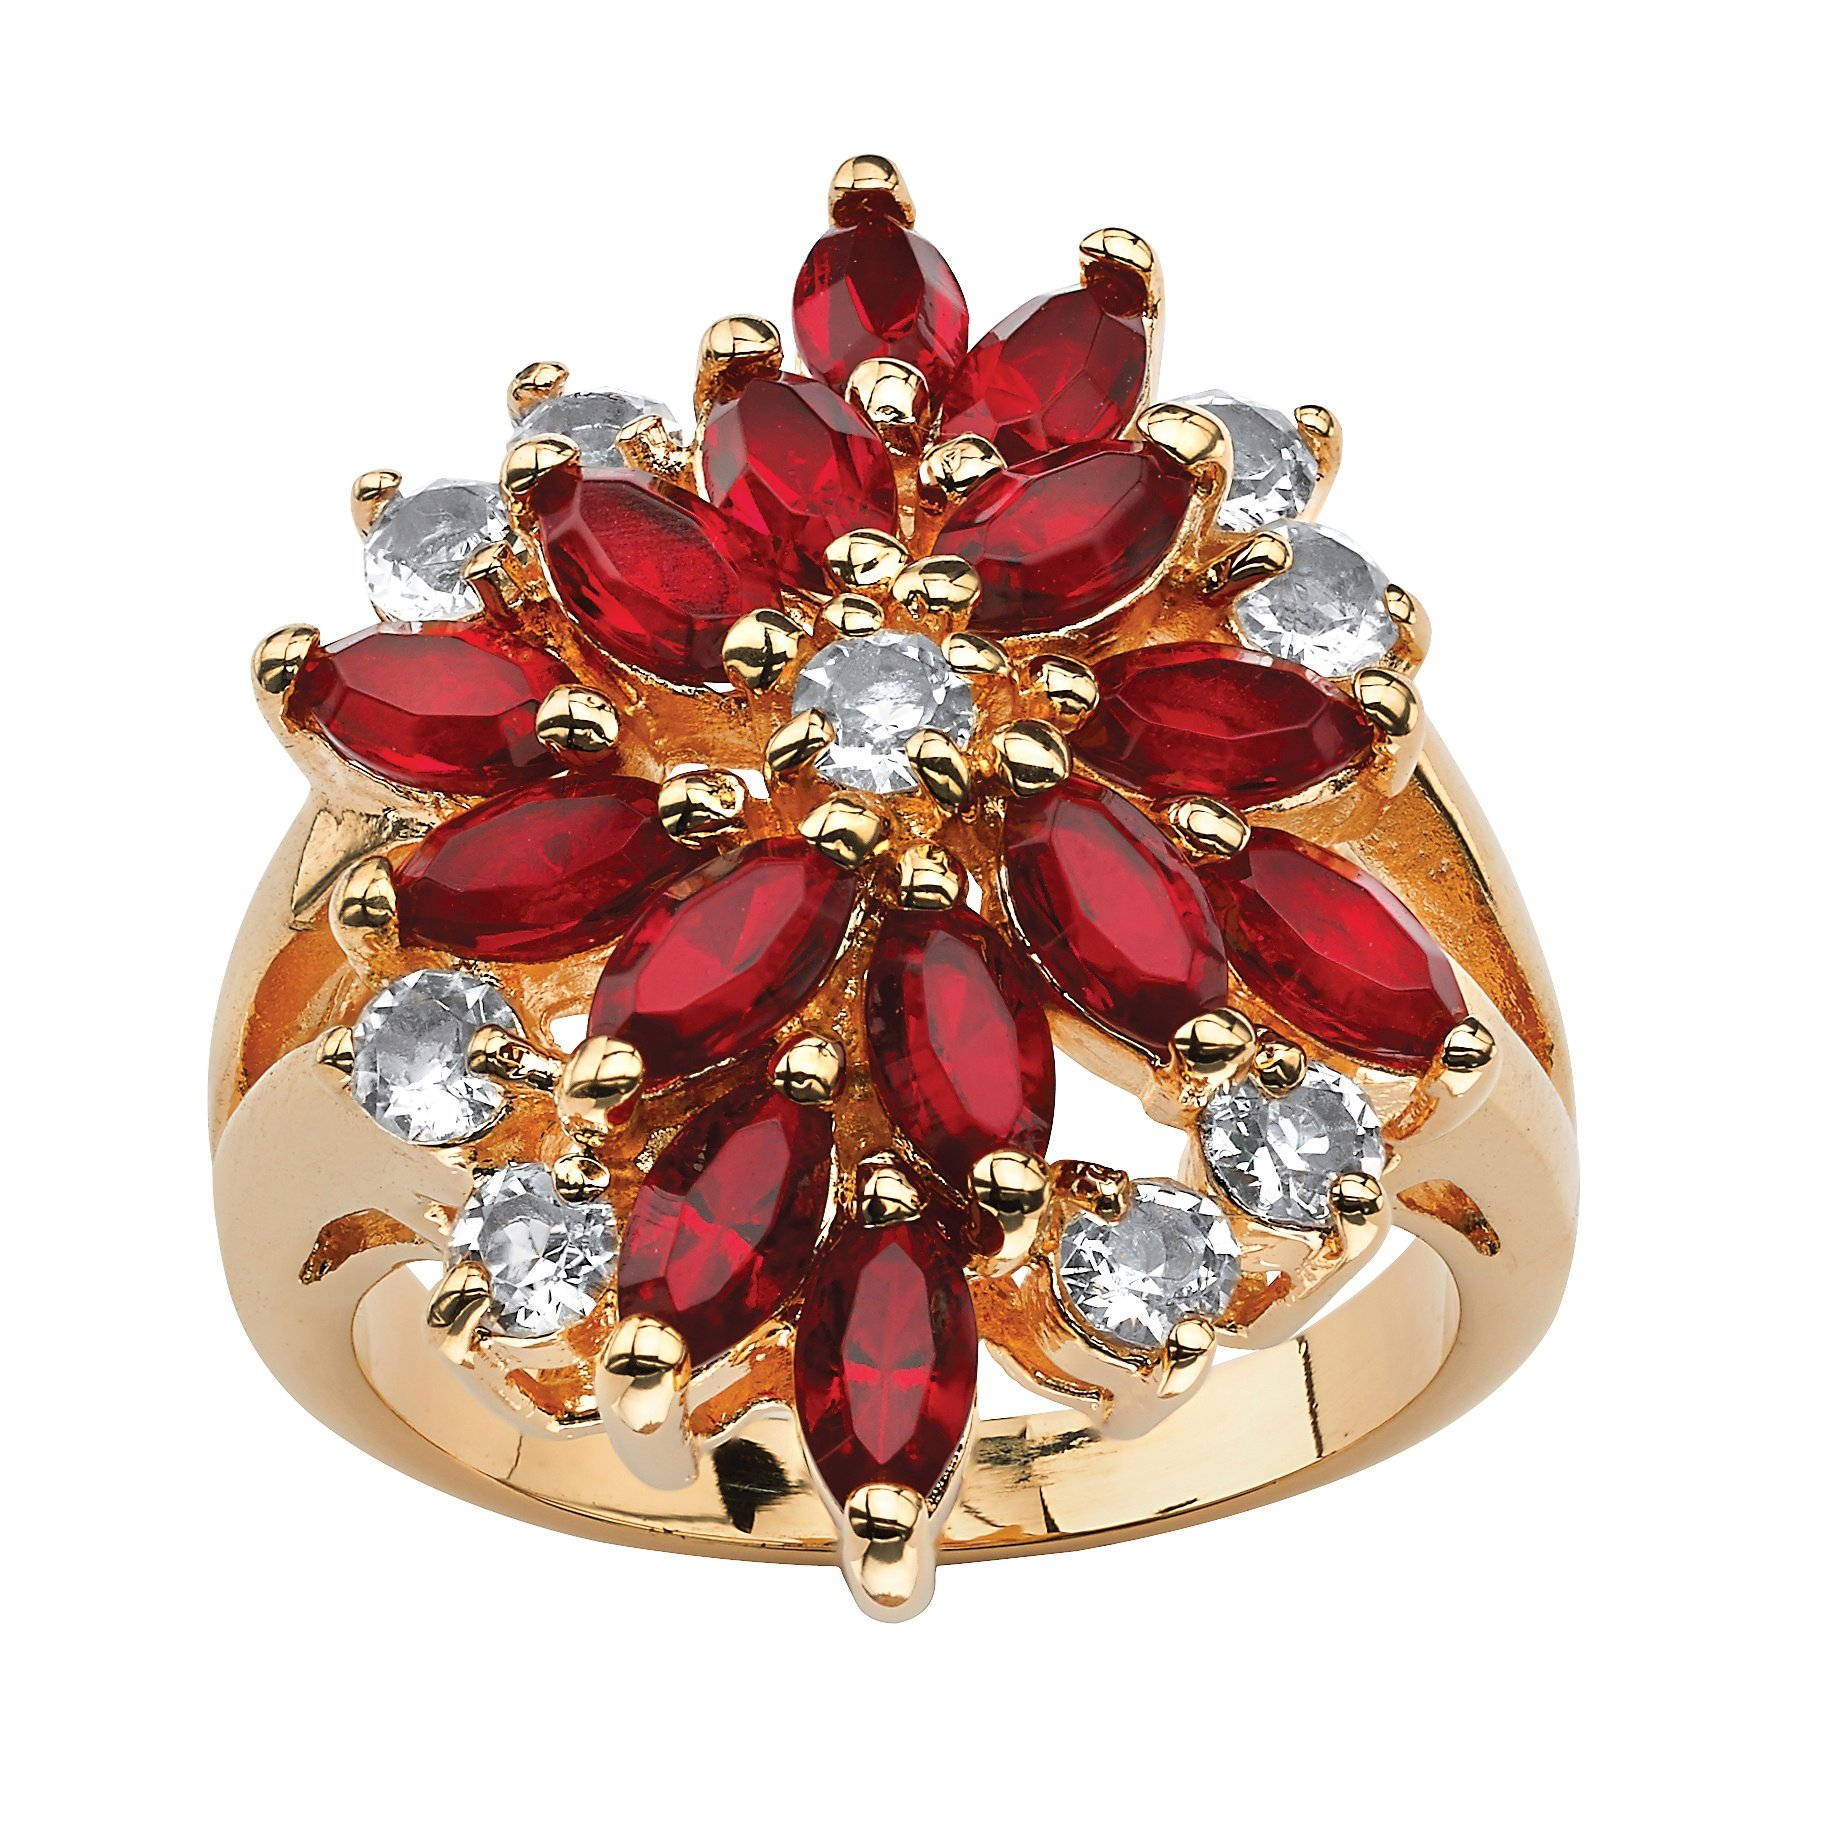 Palm Beach Jewelry 18K Gold-Plated Marquise Cut Red Floral Cluster Ring Made Swarovski Elements Size 5